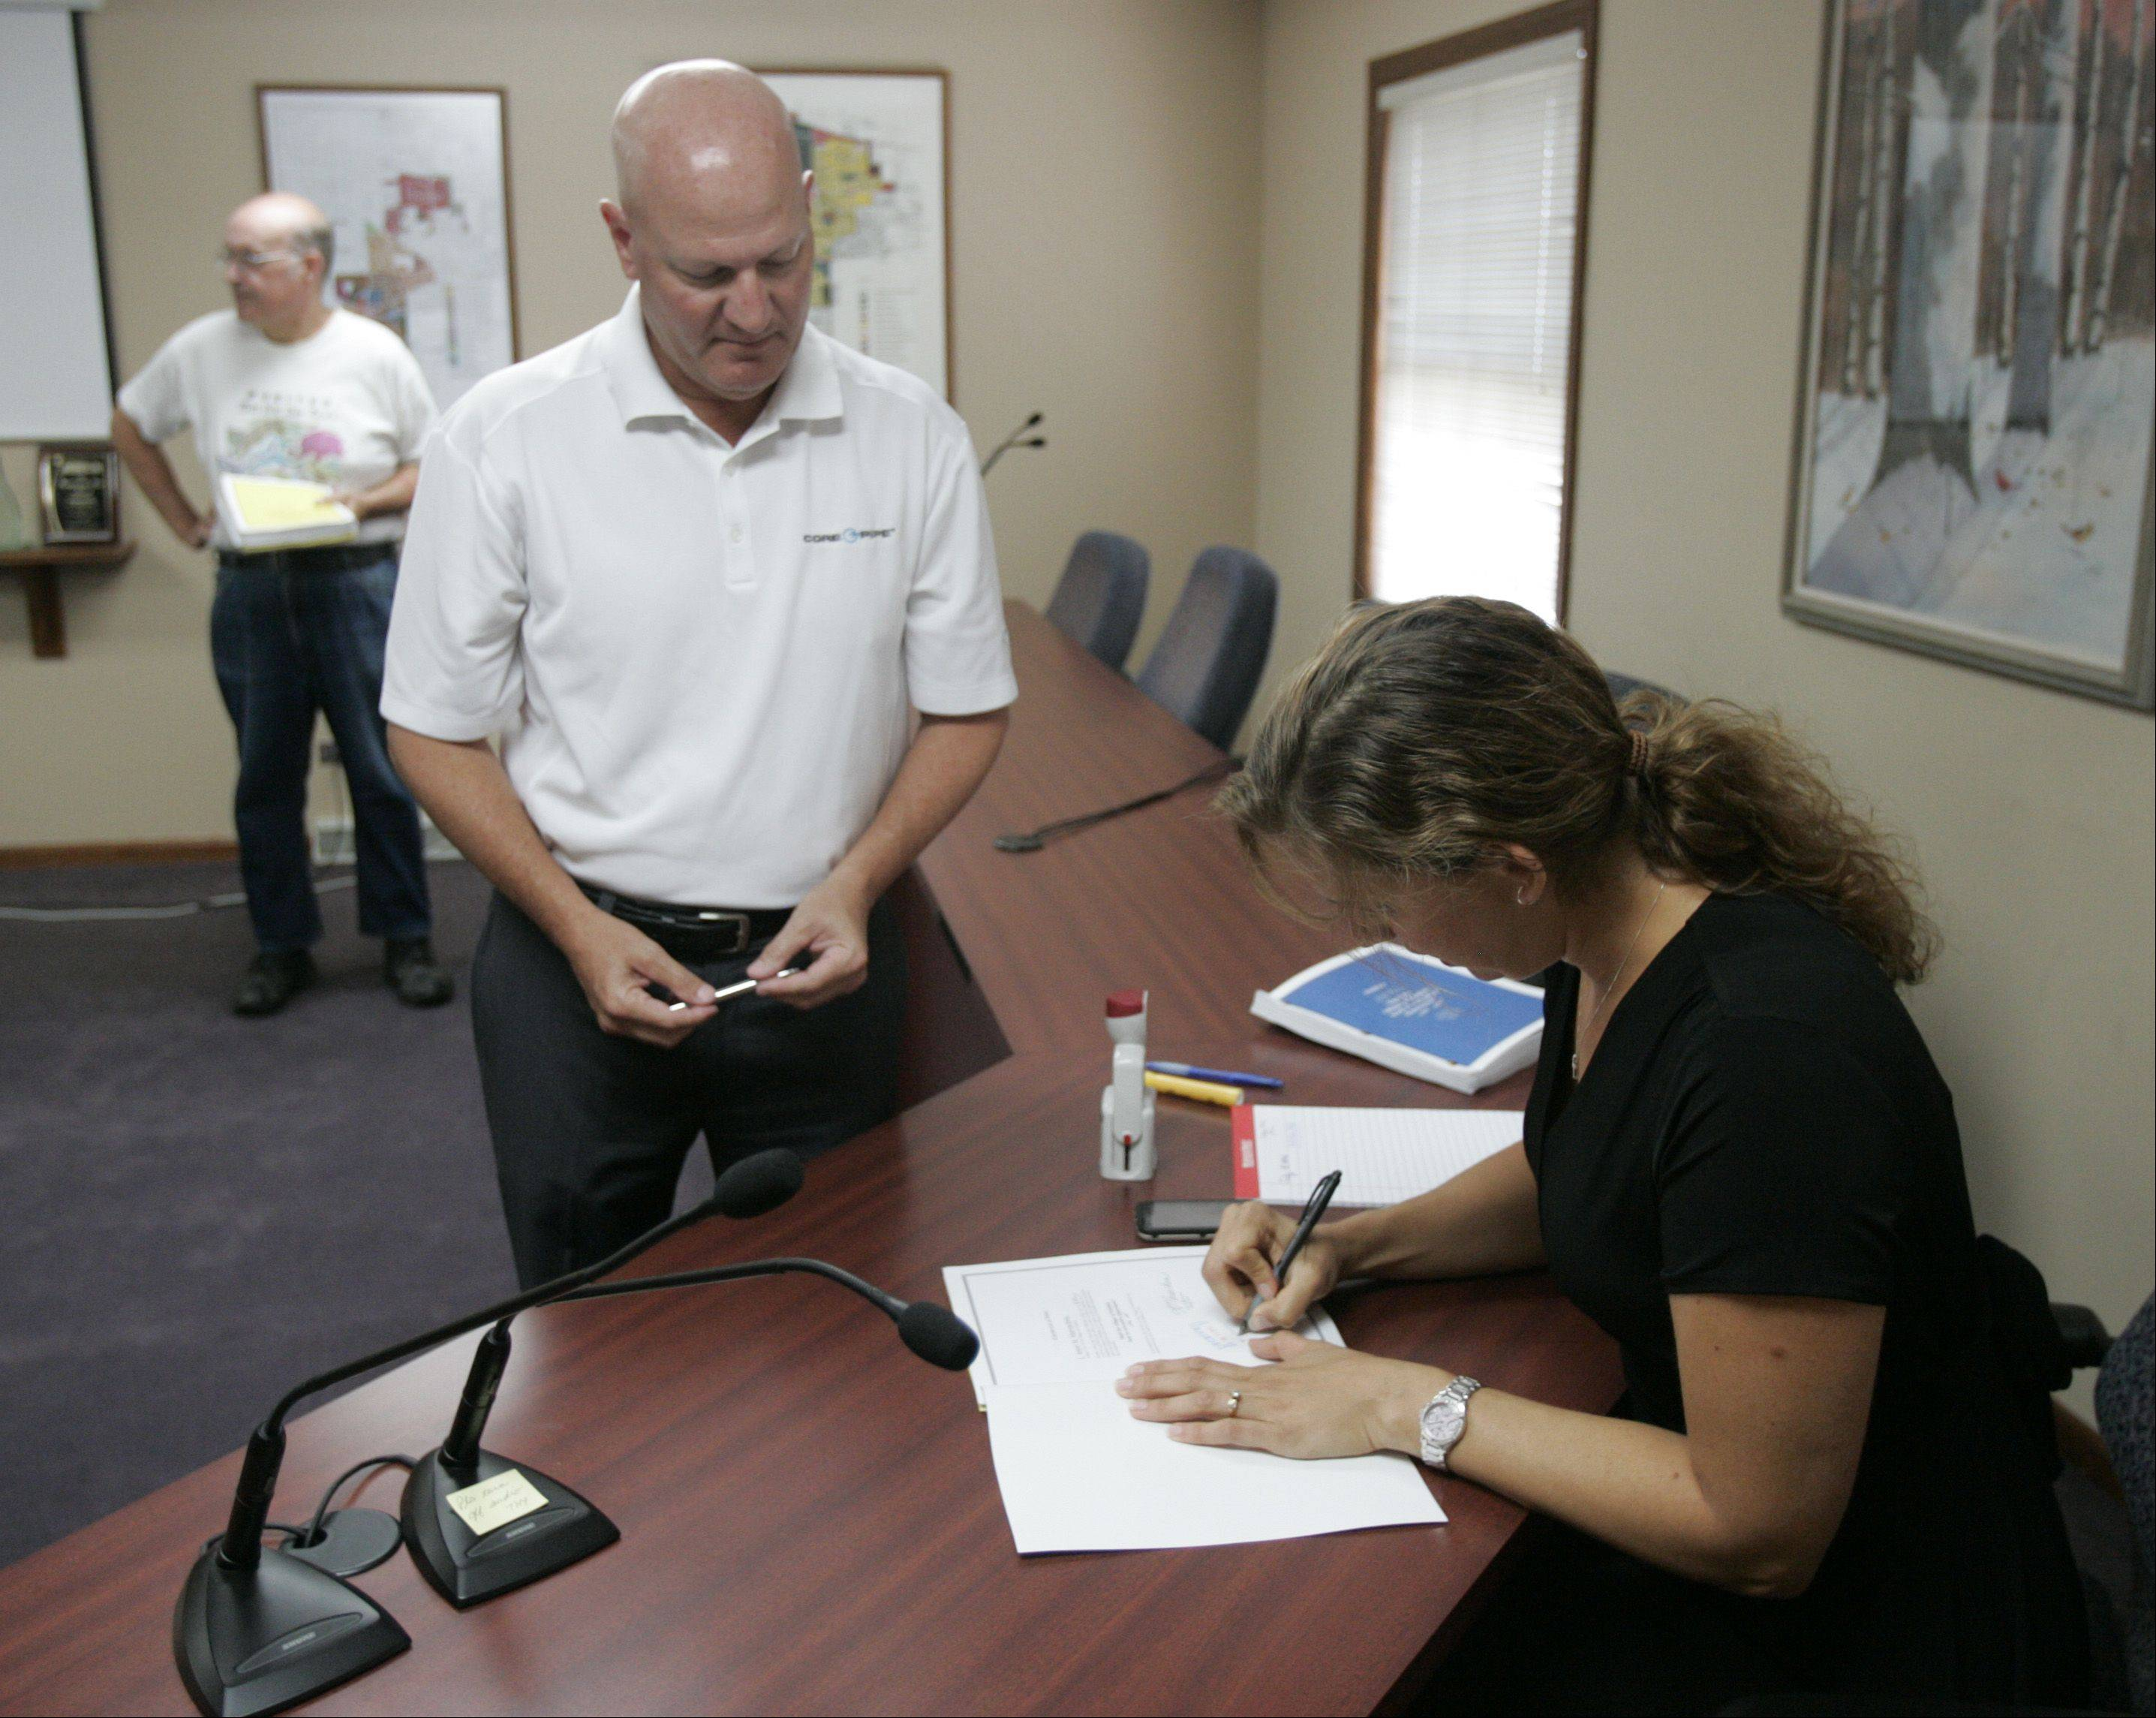 Winfield resident Steve Romanelli gives a petition Wednesday to Village Clerk Anne Mareachen at village hall calling for two questions to be put on the November ballot.